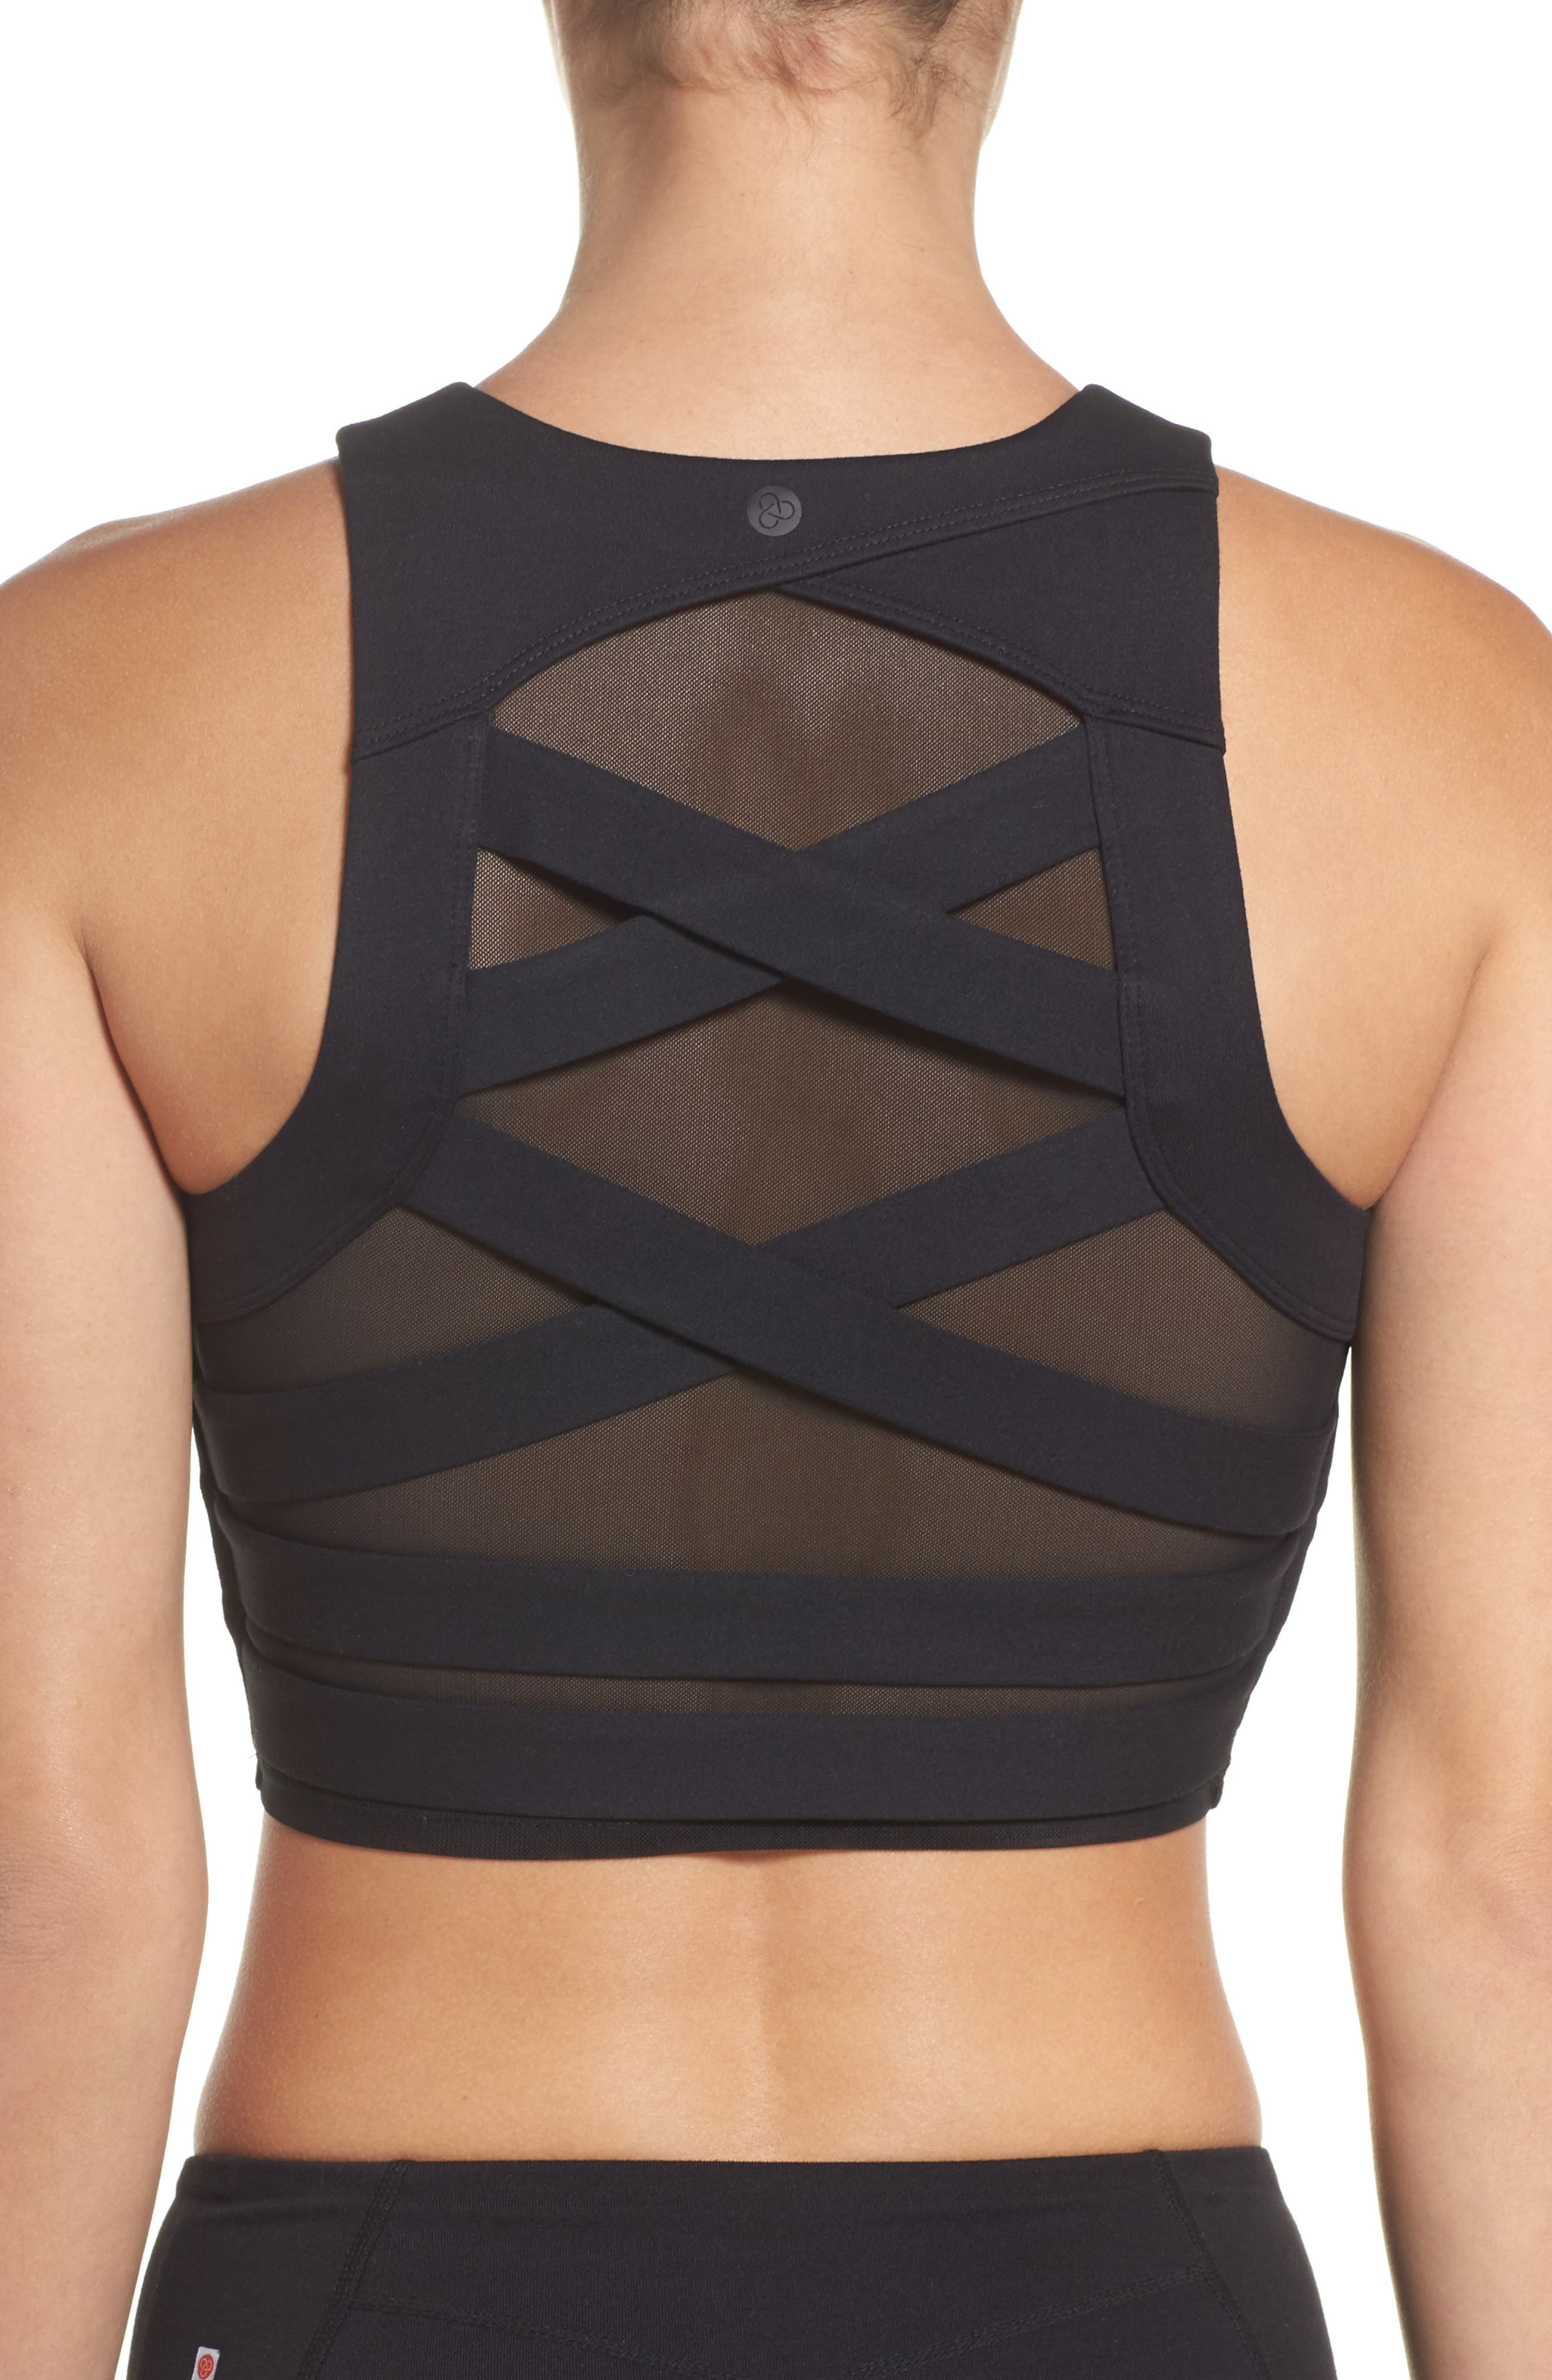 Zella Covet Sports Bra Top